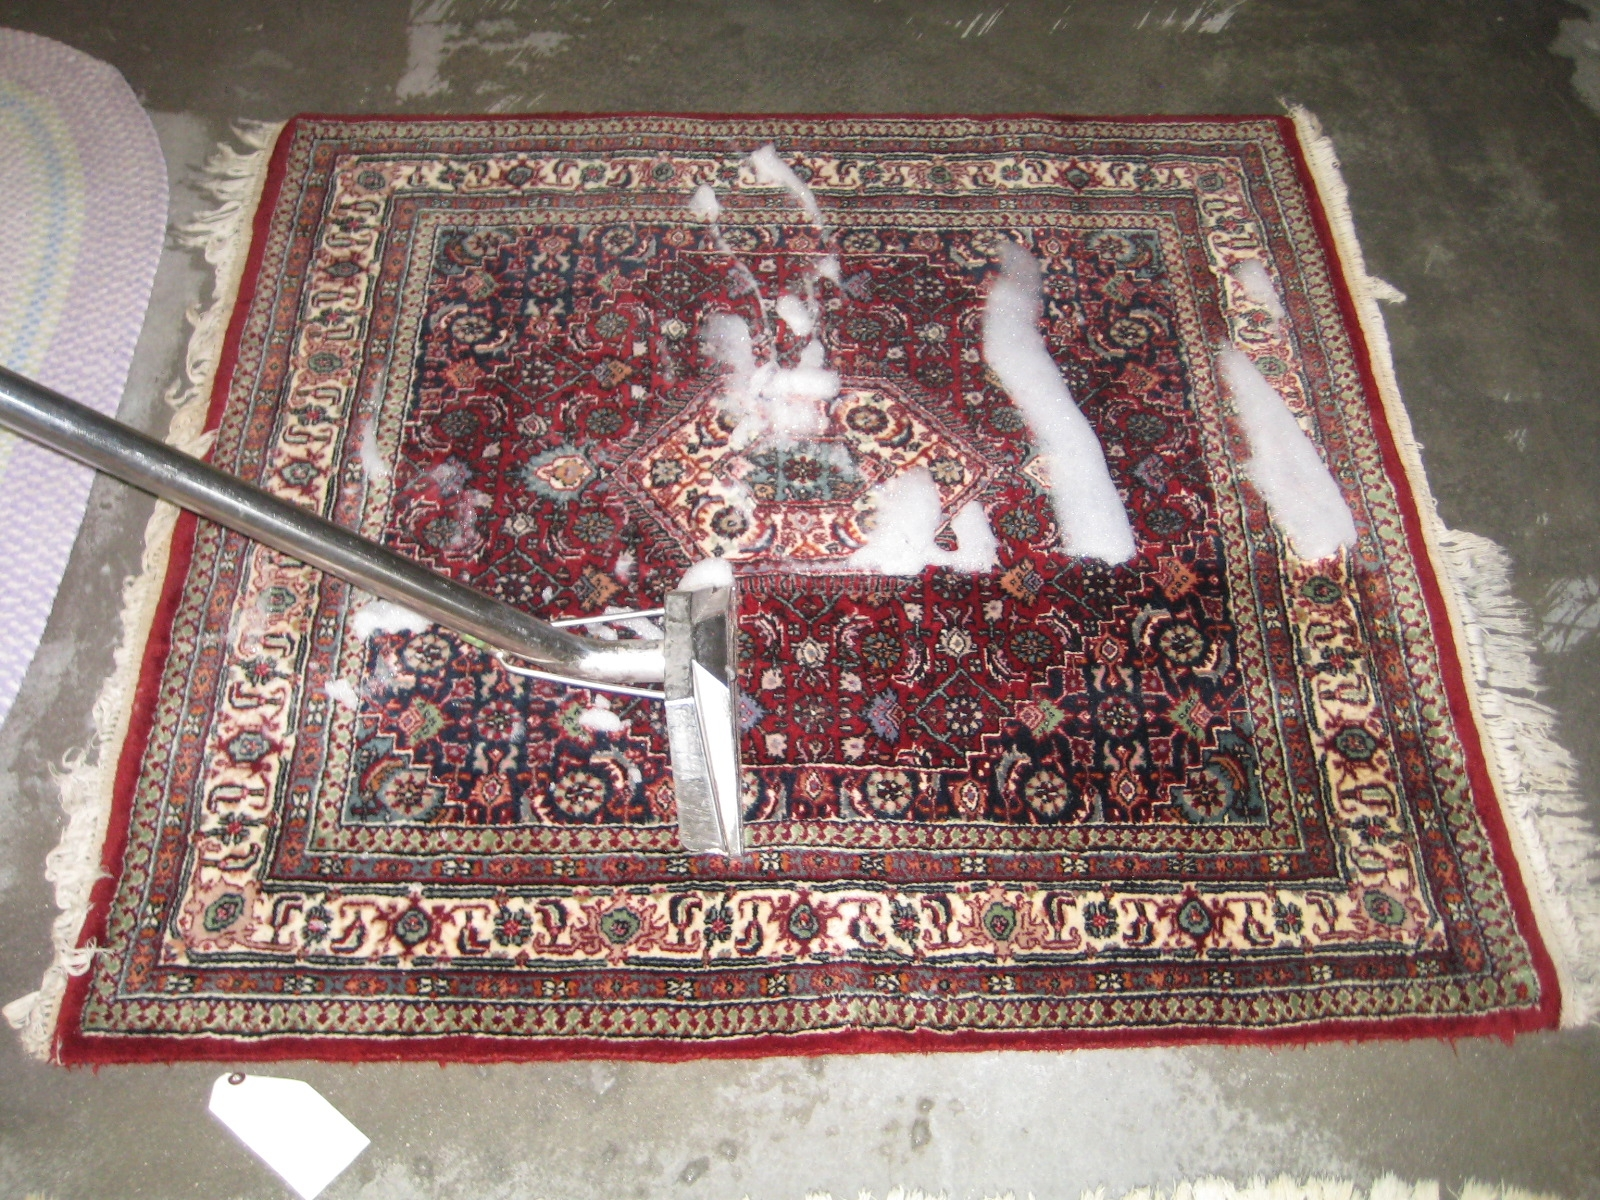 Professional Hand Wash Rug Cleaning And Area Rug Dry Cleaning Services